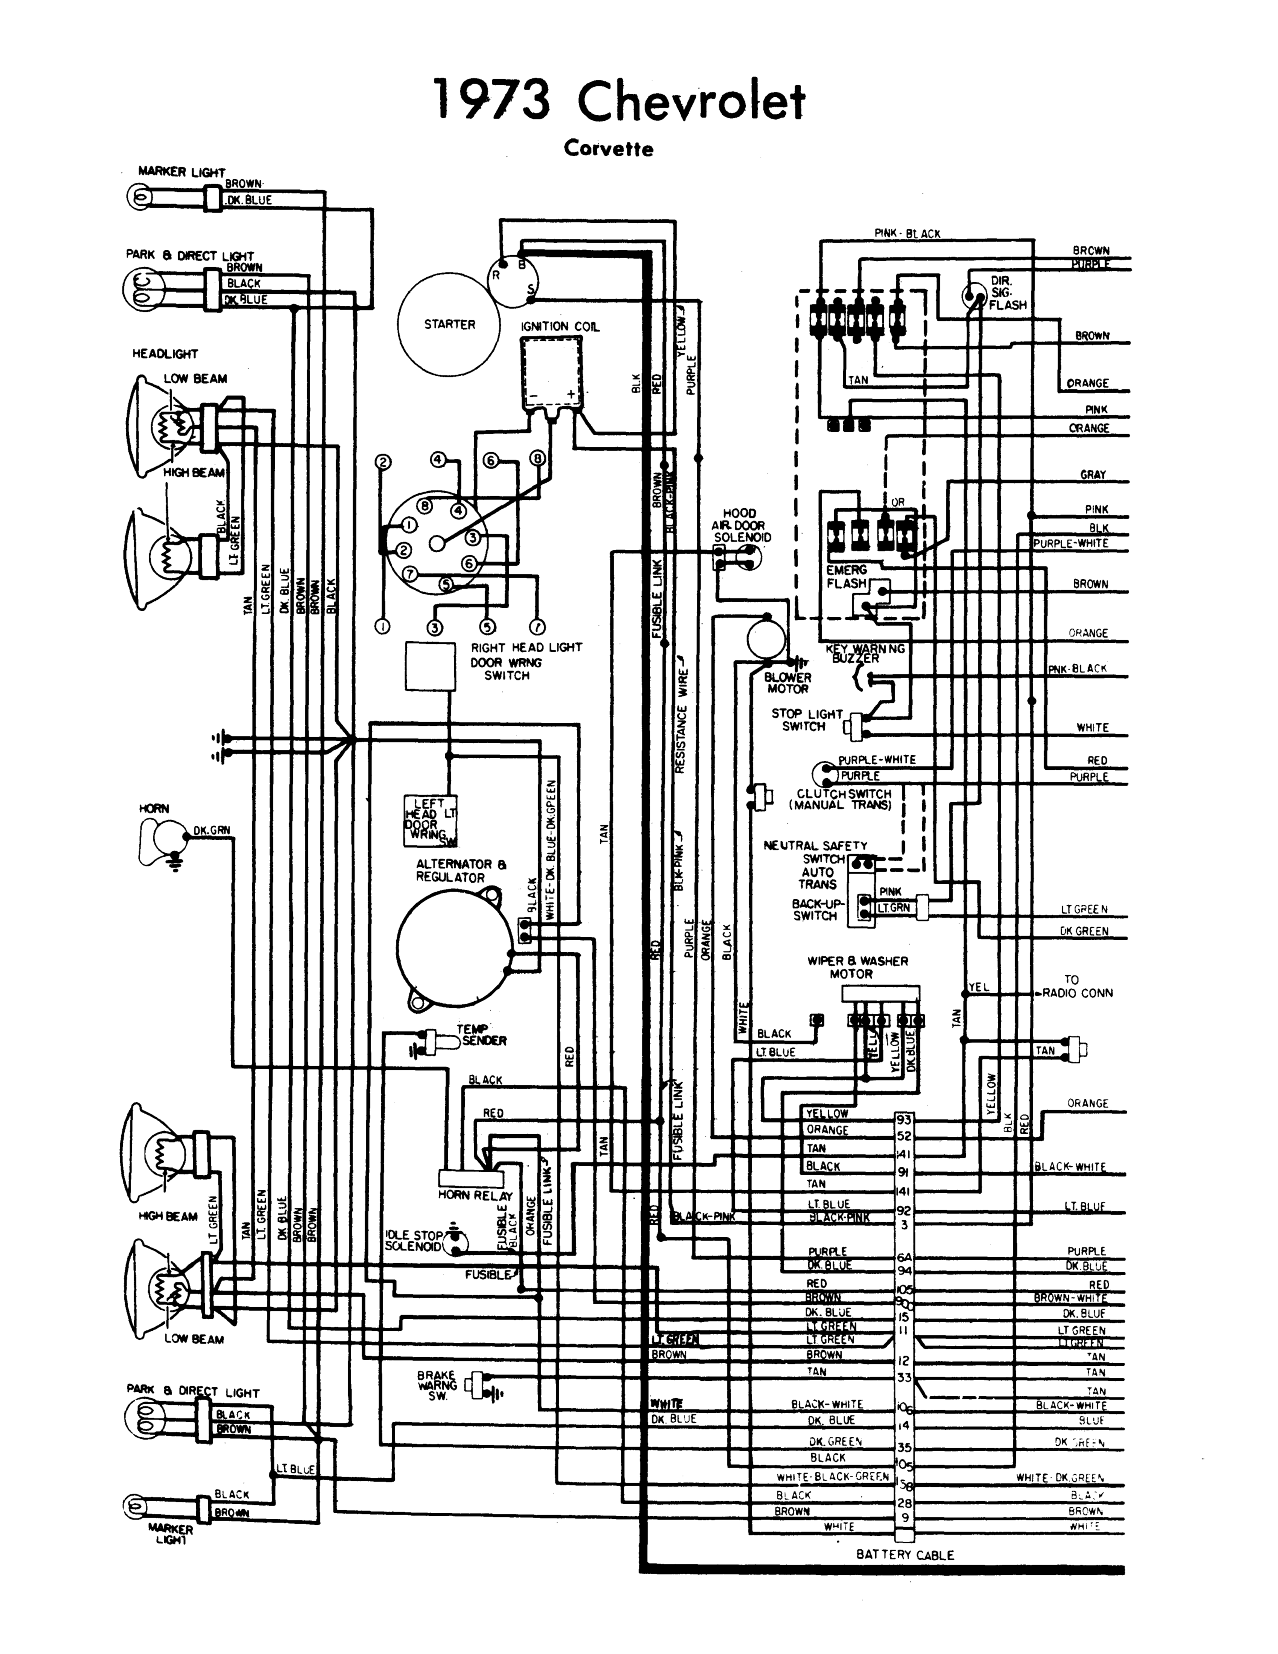 wiring diagram 1973 corvette chevy corvette 1973 wiring diagrams rh pinterest com 1973 corvette ignition wiring diagram 1973 corvette wiring diagrams download